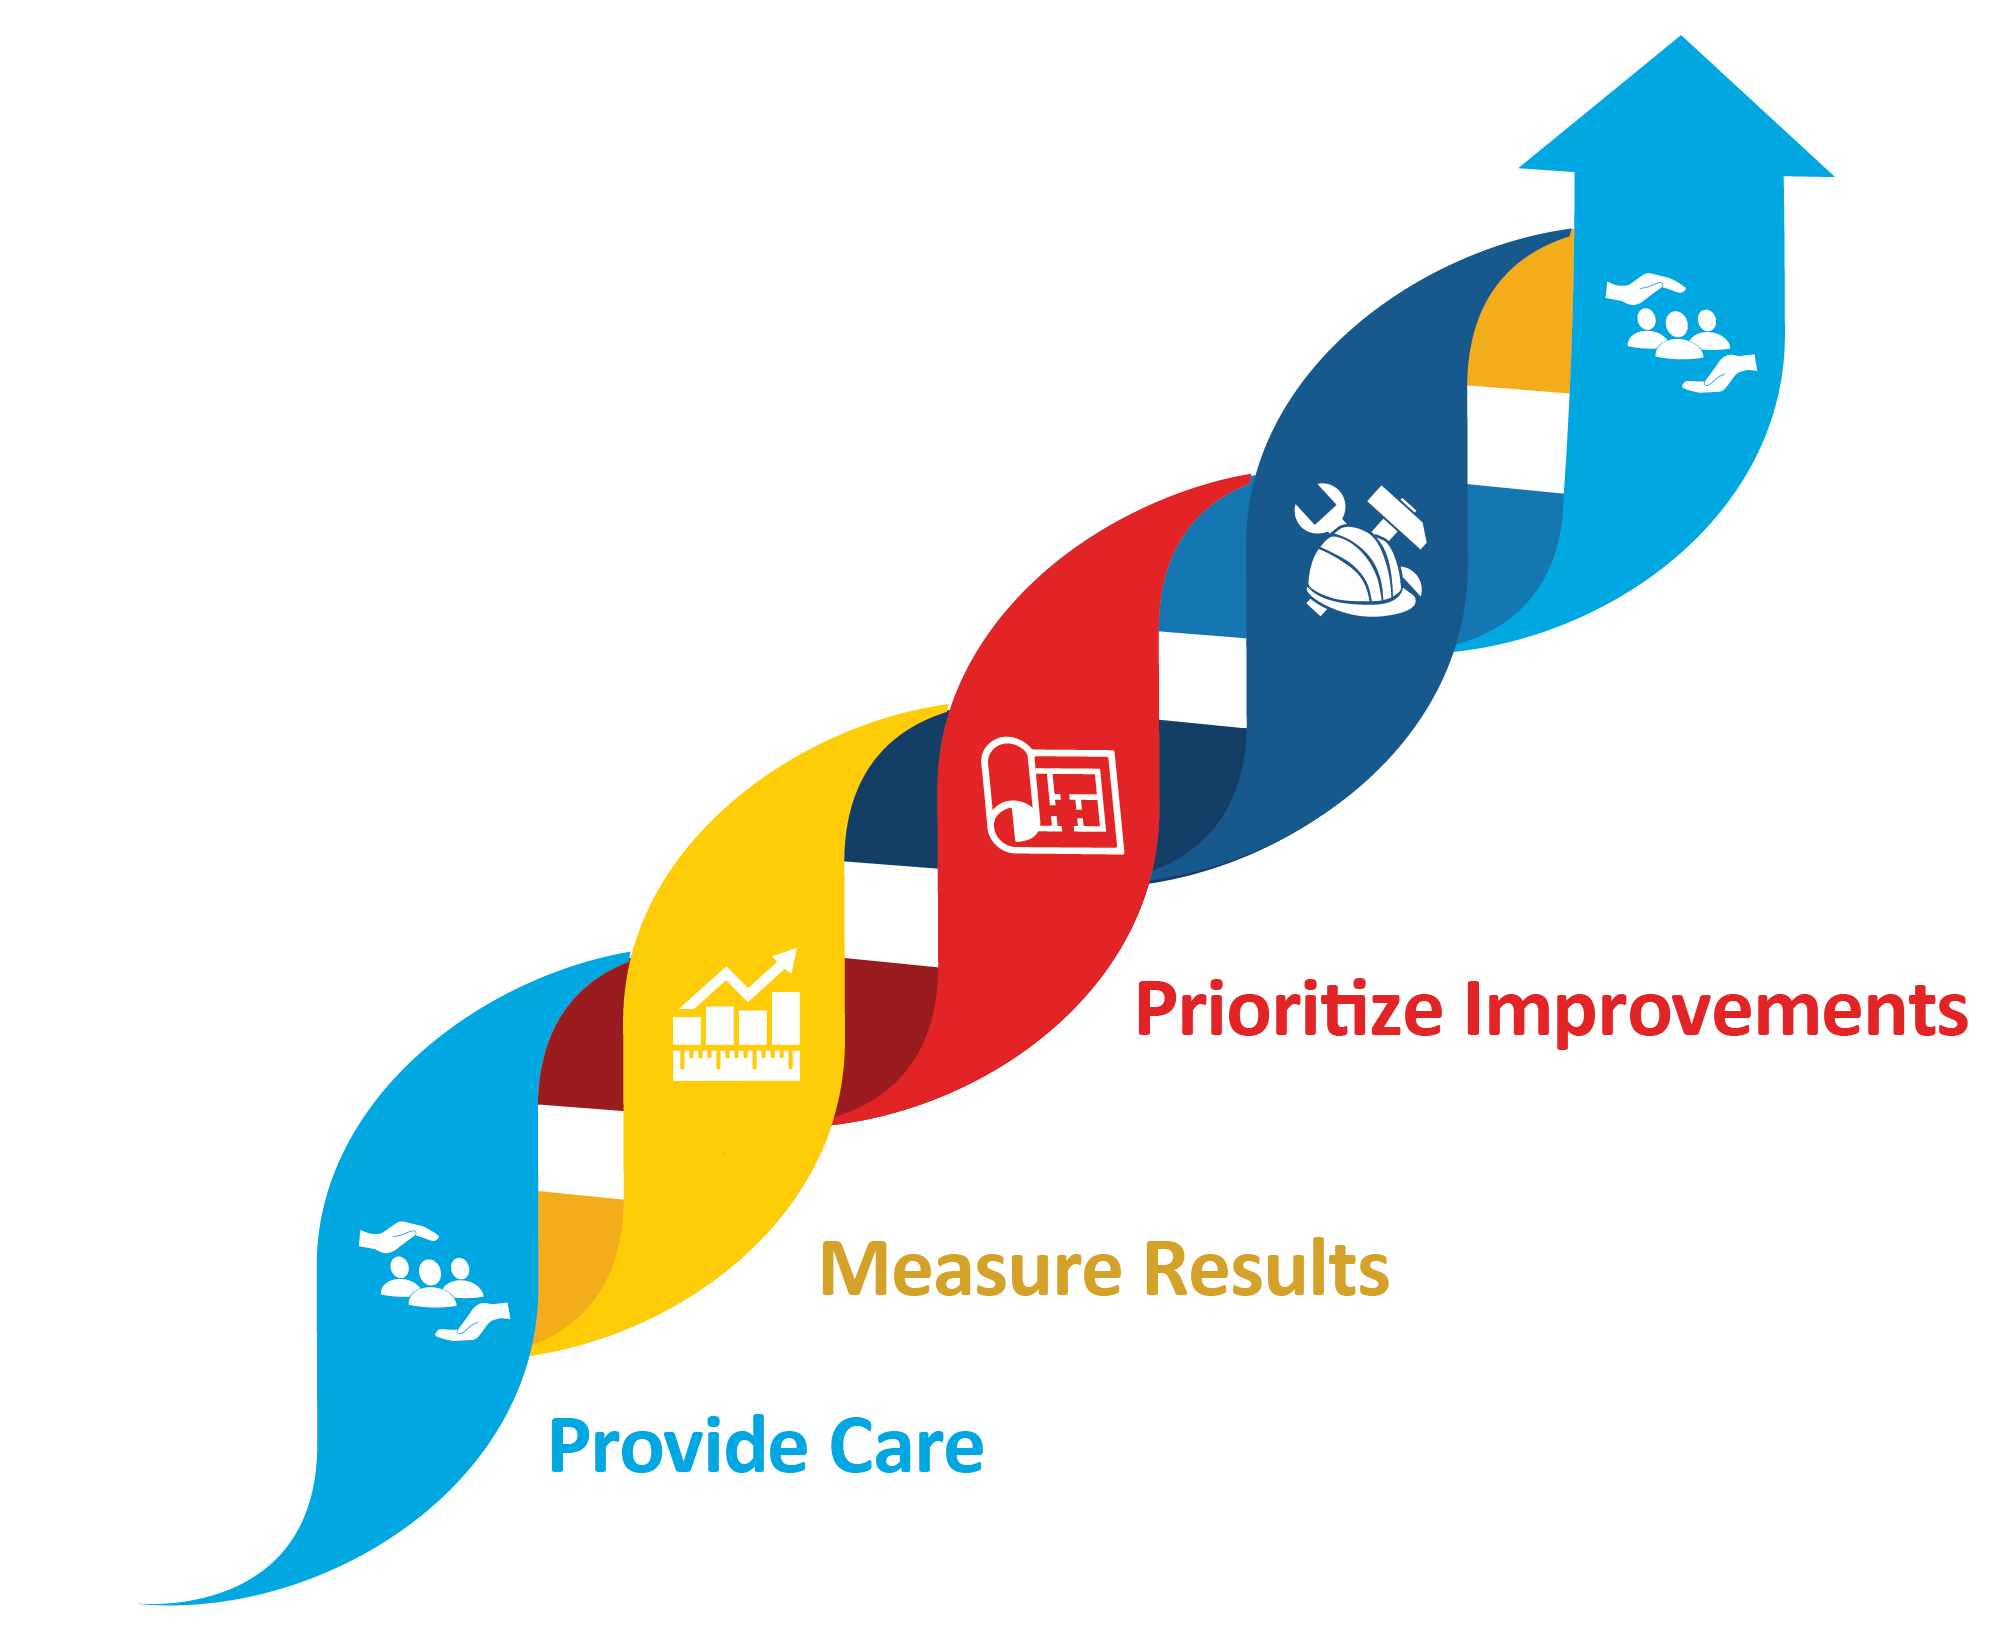 The continuous process to achieve optimal care: Provide care, Measure results, Plan improvements, and implement Improvements